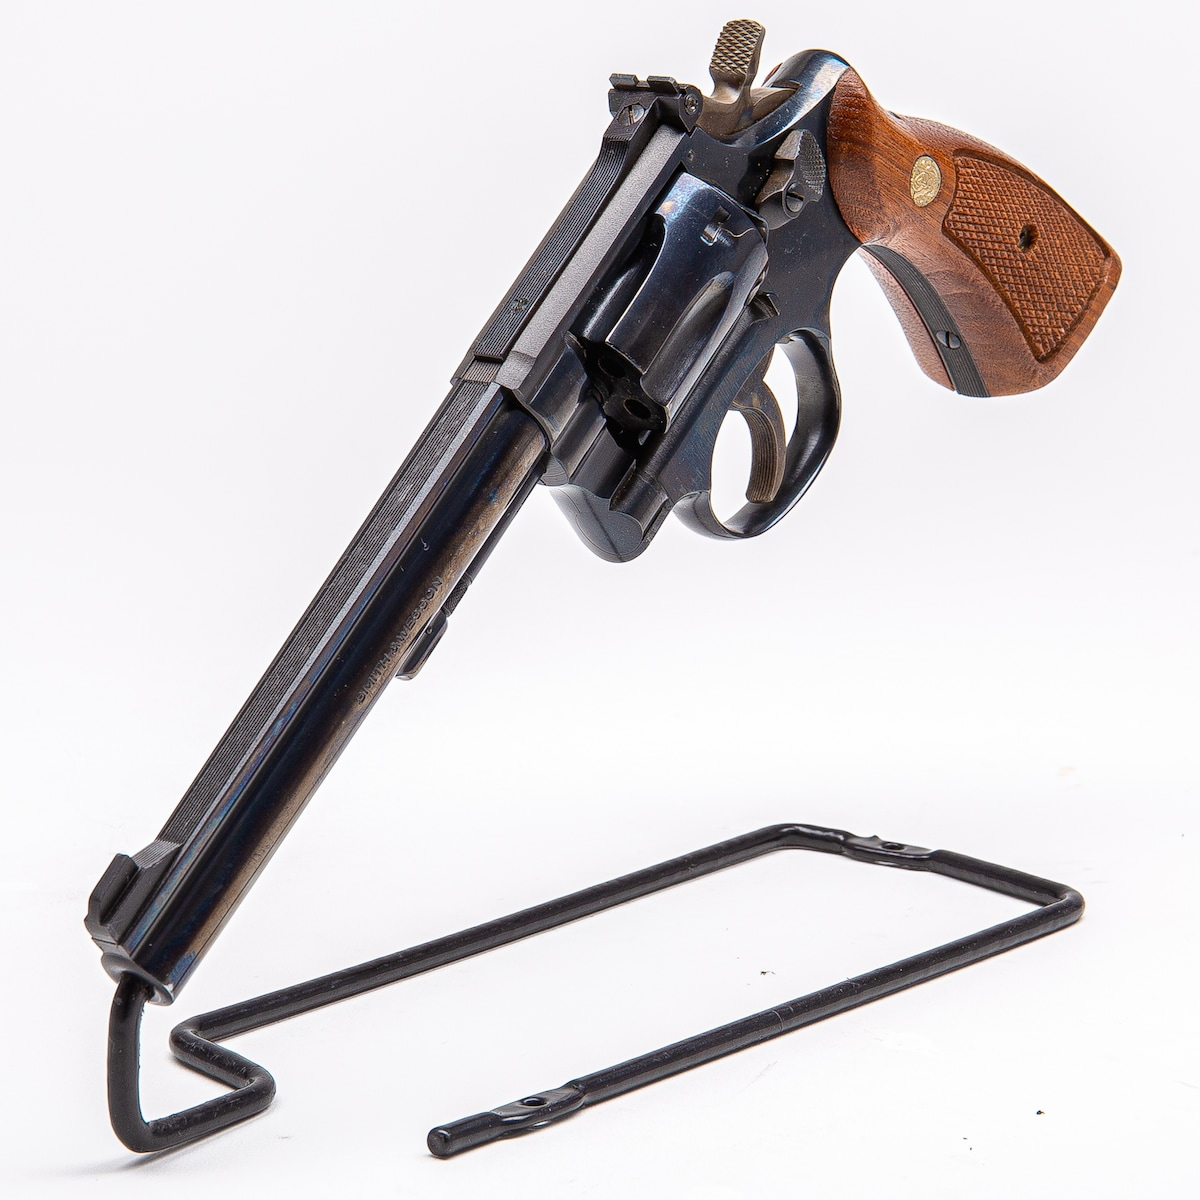 SMITH & WESSON MODEL 48-4